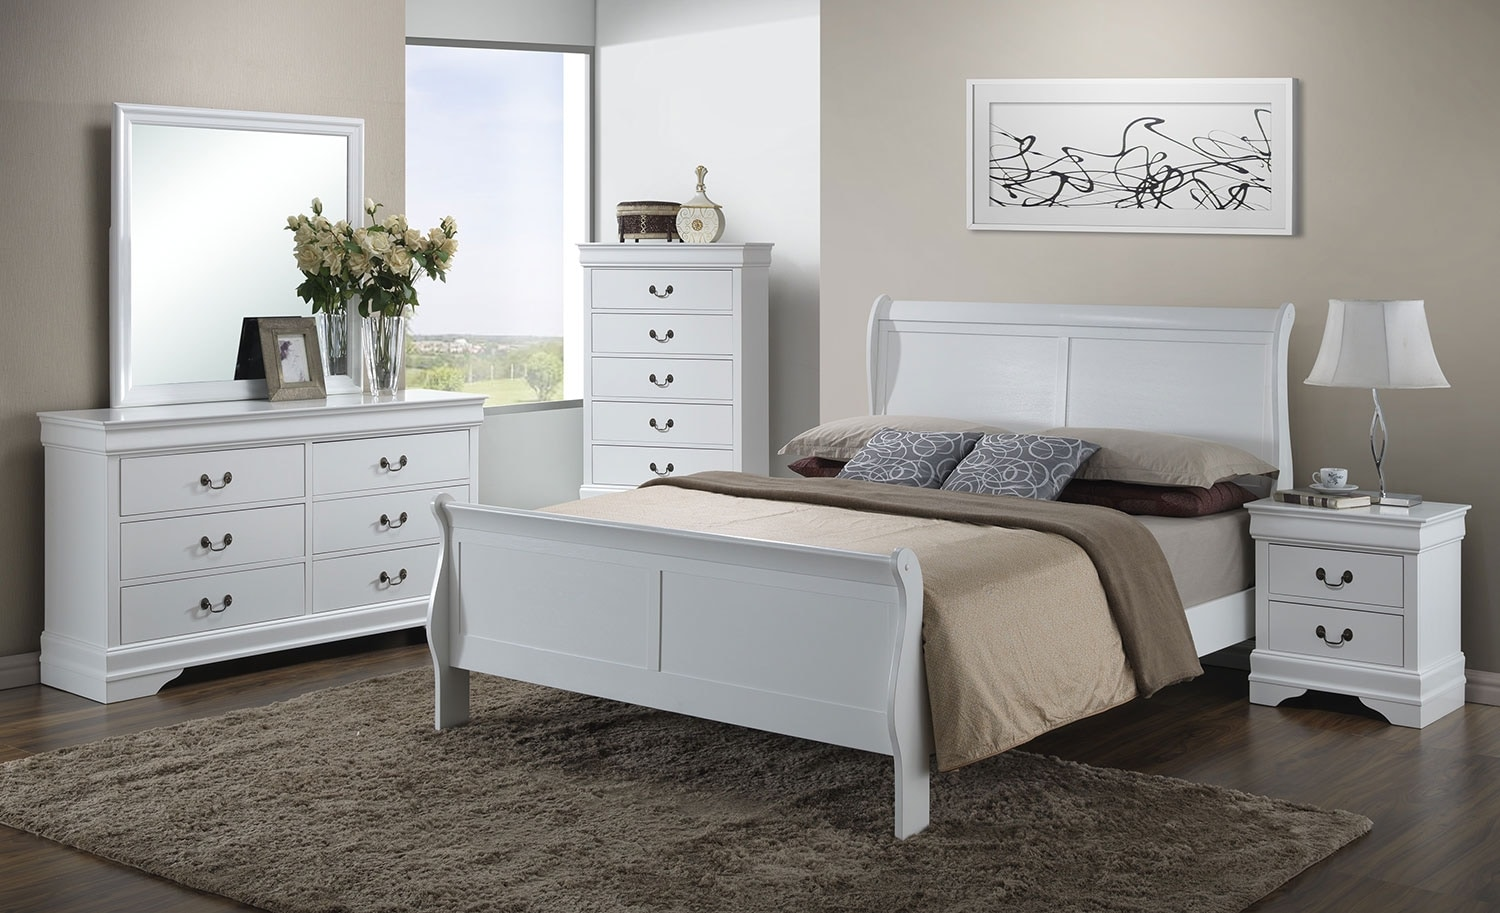 Bedroom Furniture - Belleview 8-Piece King Bedroom Package - White